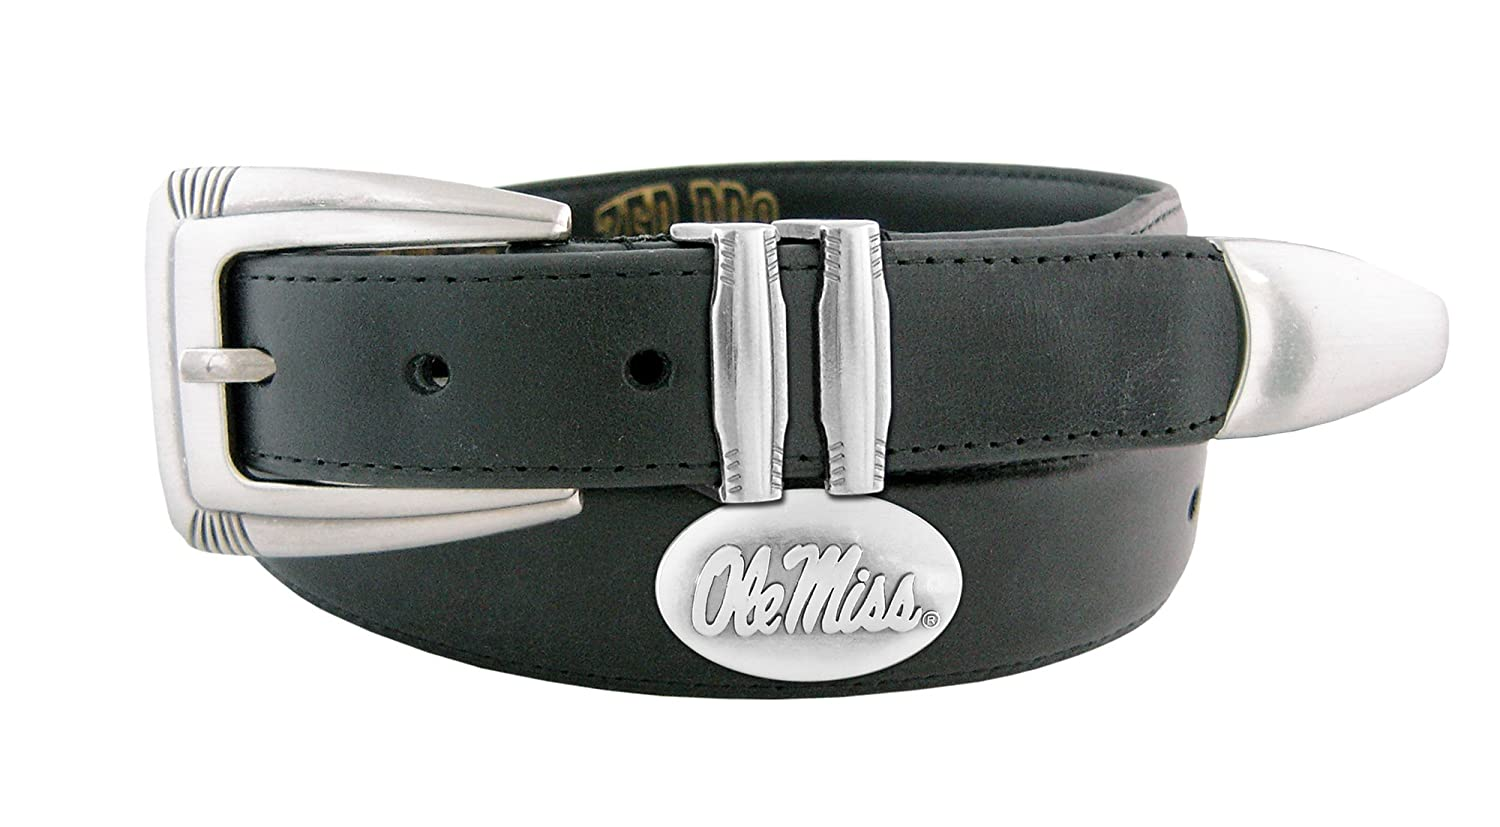 NCAA Mississippi Old Miss Rebels Zep-Pro Leather Concho Tapered Tip Belt Tan 34-inches UMS-BBLPT-Black-34